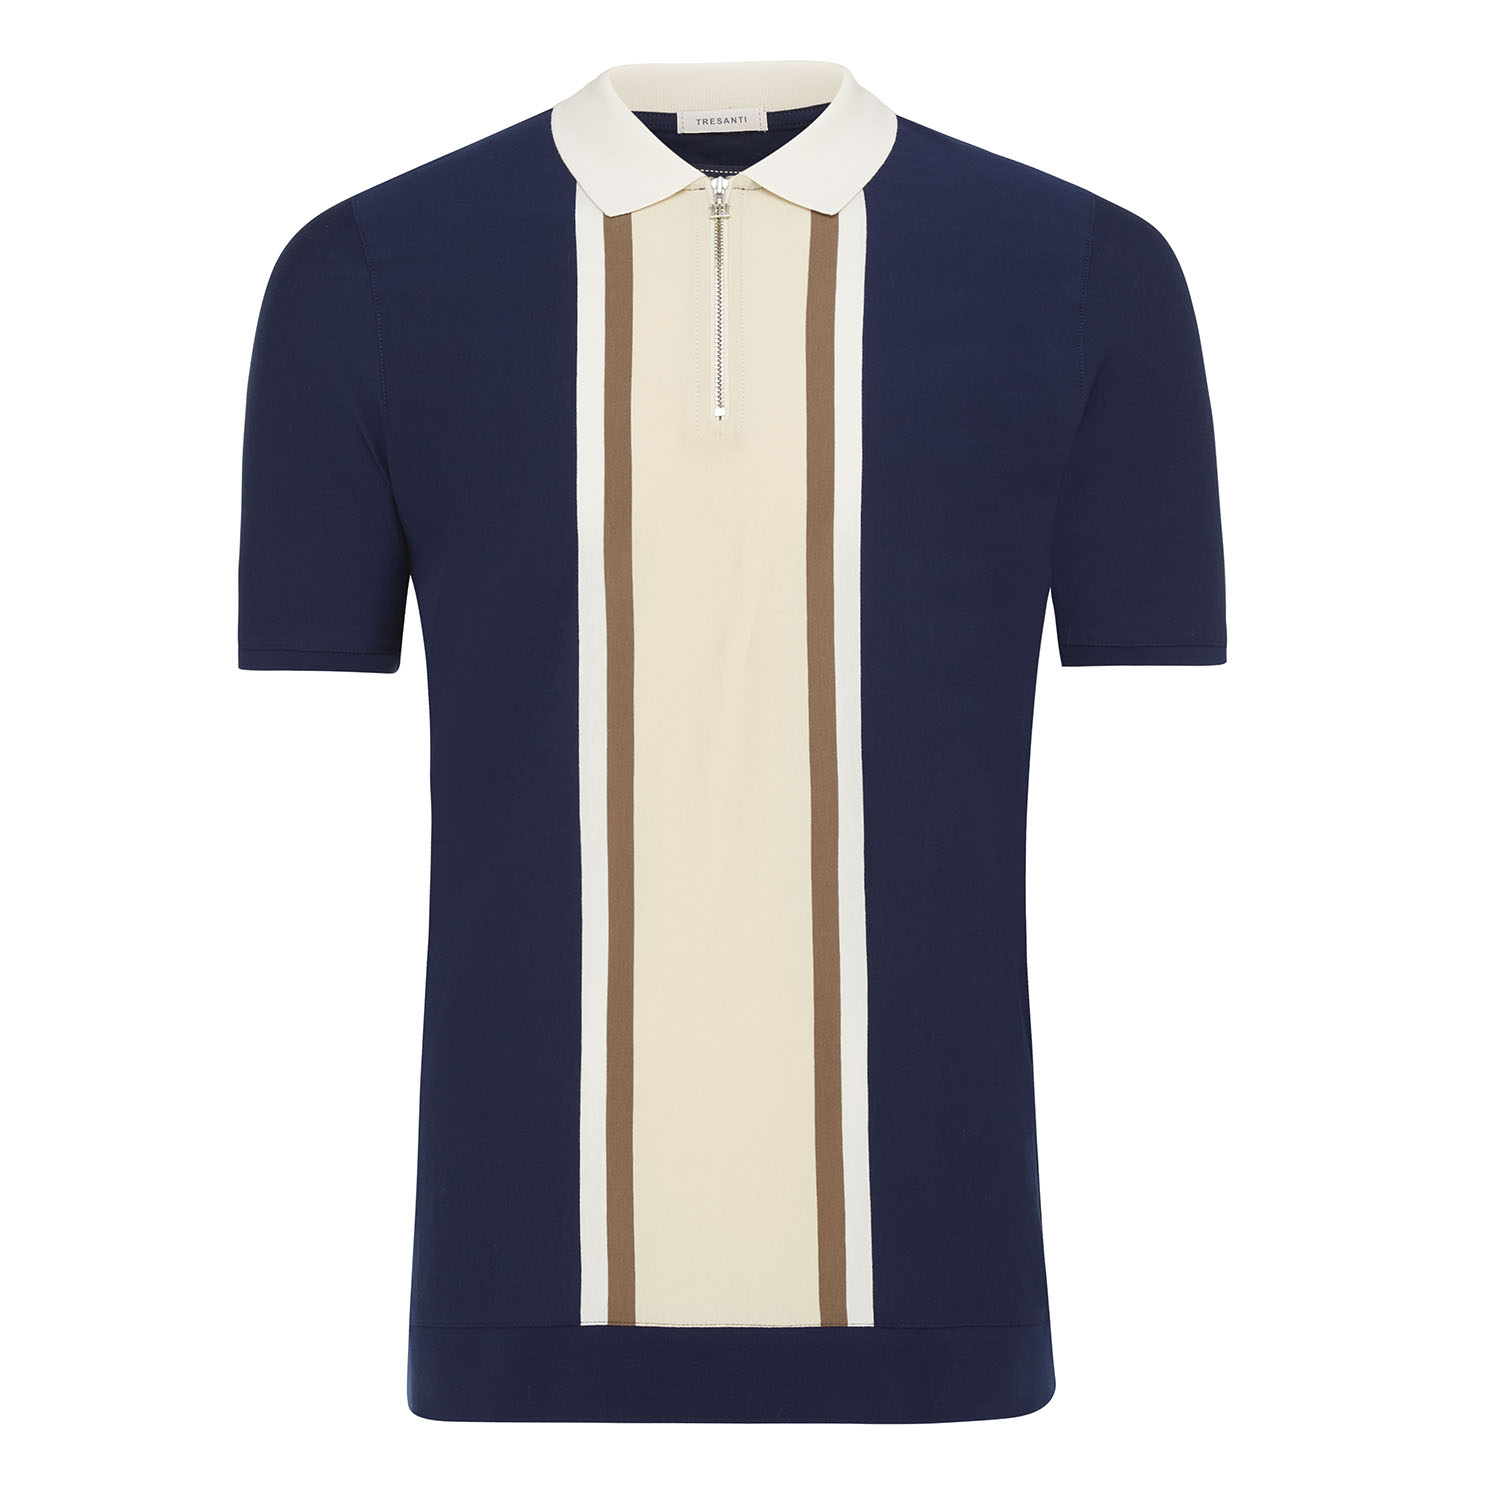 Marvin | Polo mercerized cotton with zipper navy